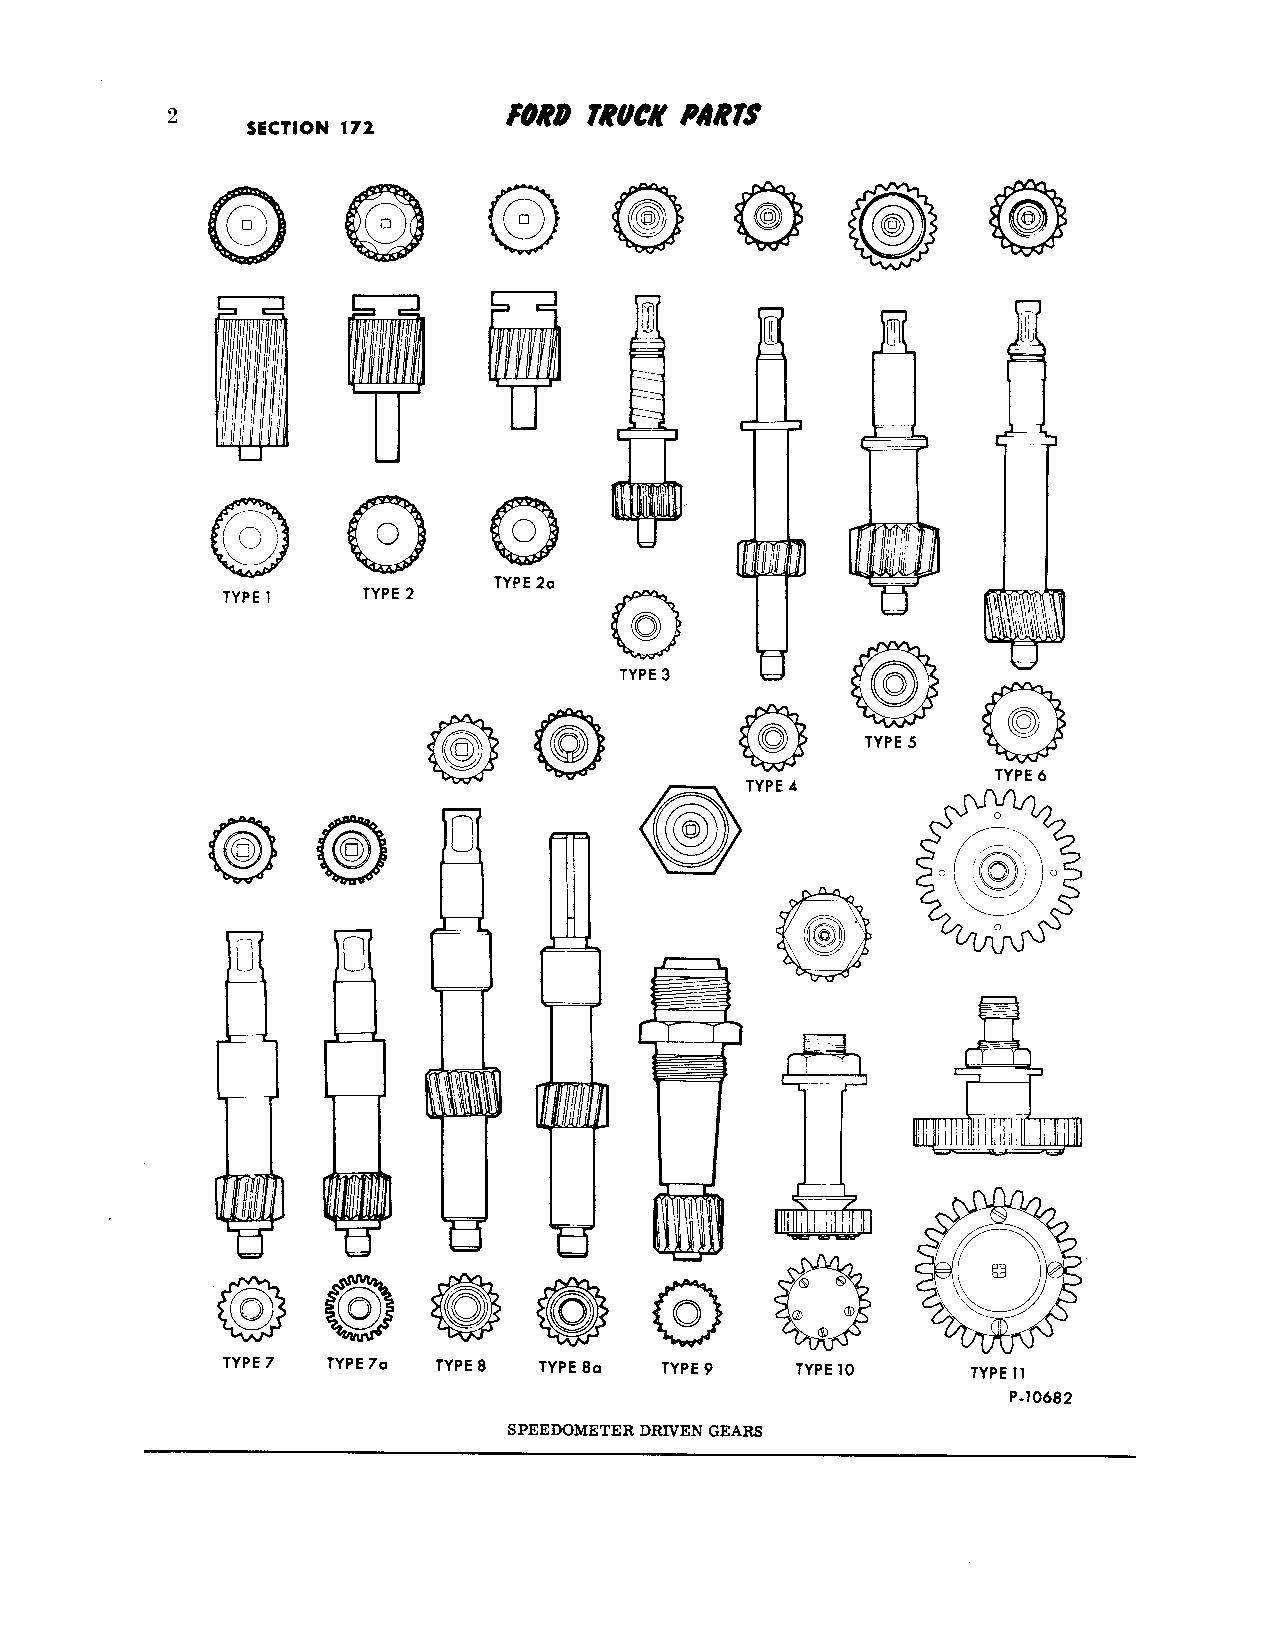 transmission identification  transmission identification · ford a4ld  neutral safety switch wiring diagram